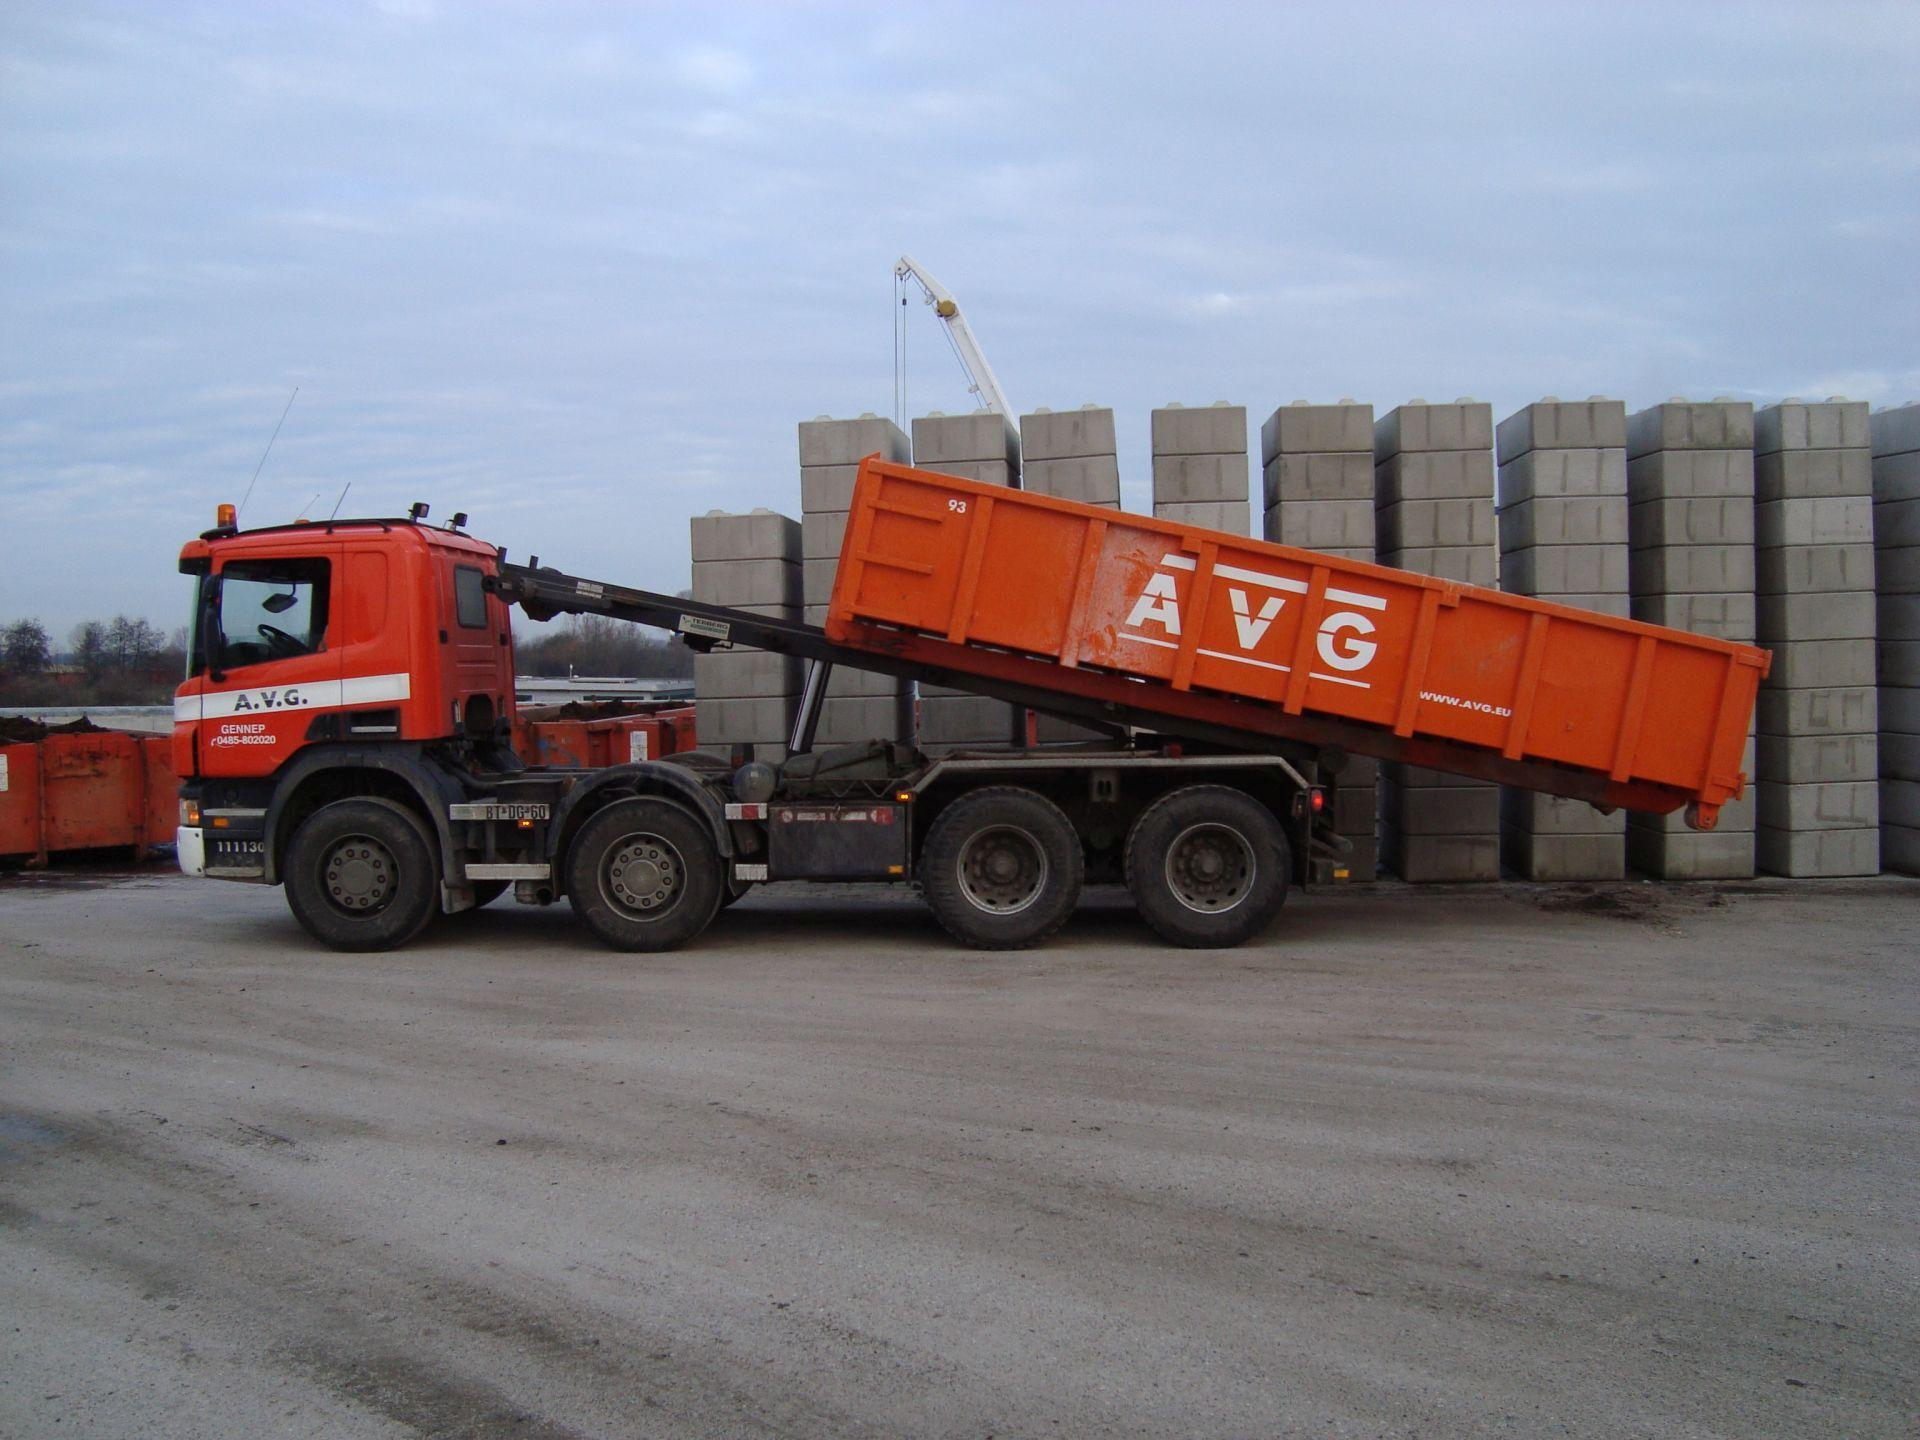 lange-container-6-avg-bouwstoffen